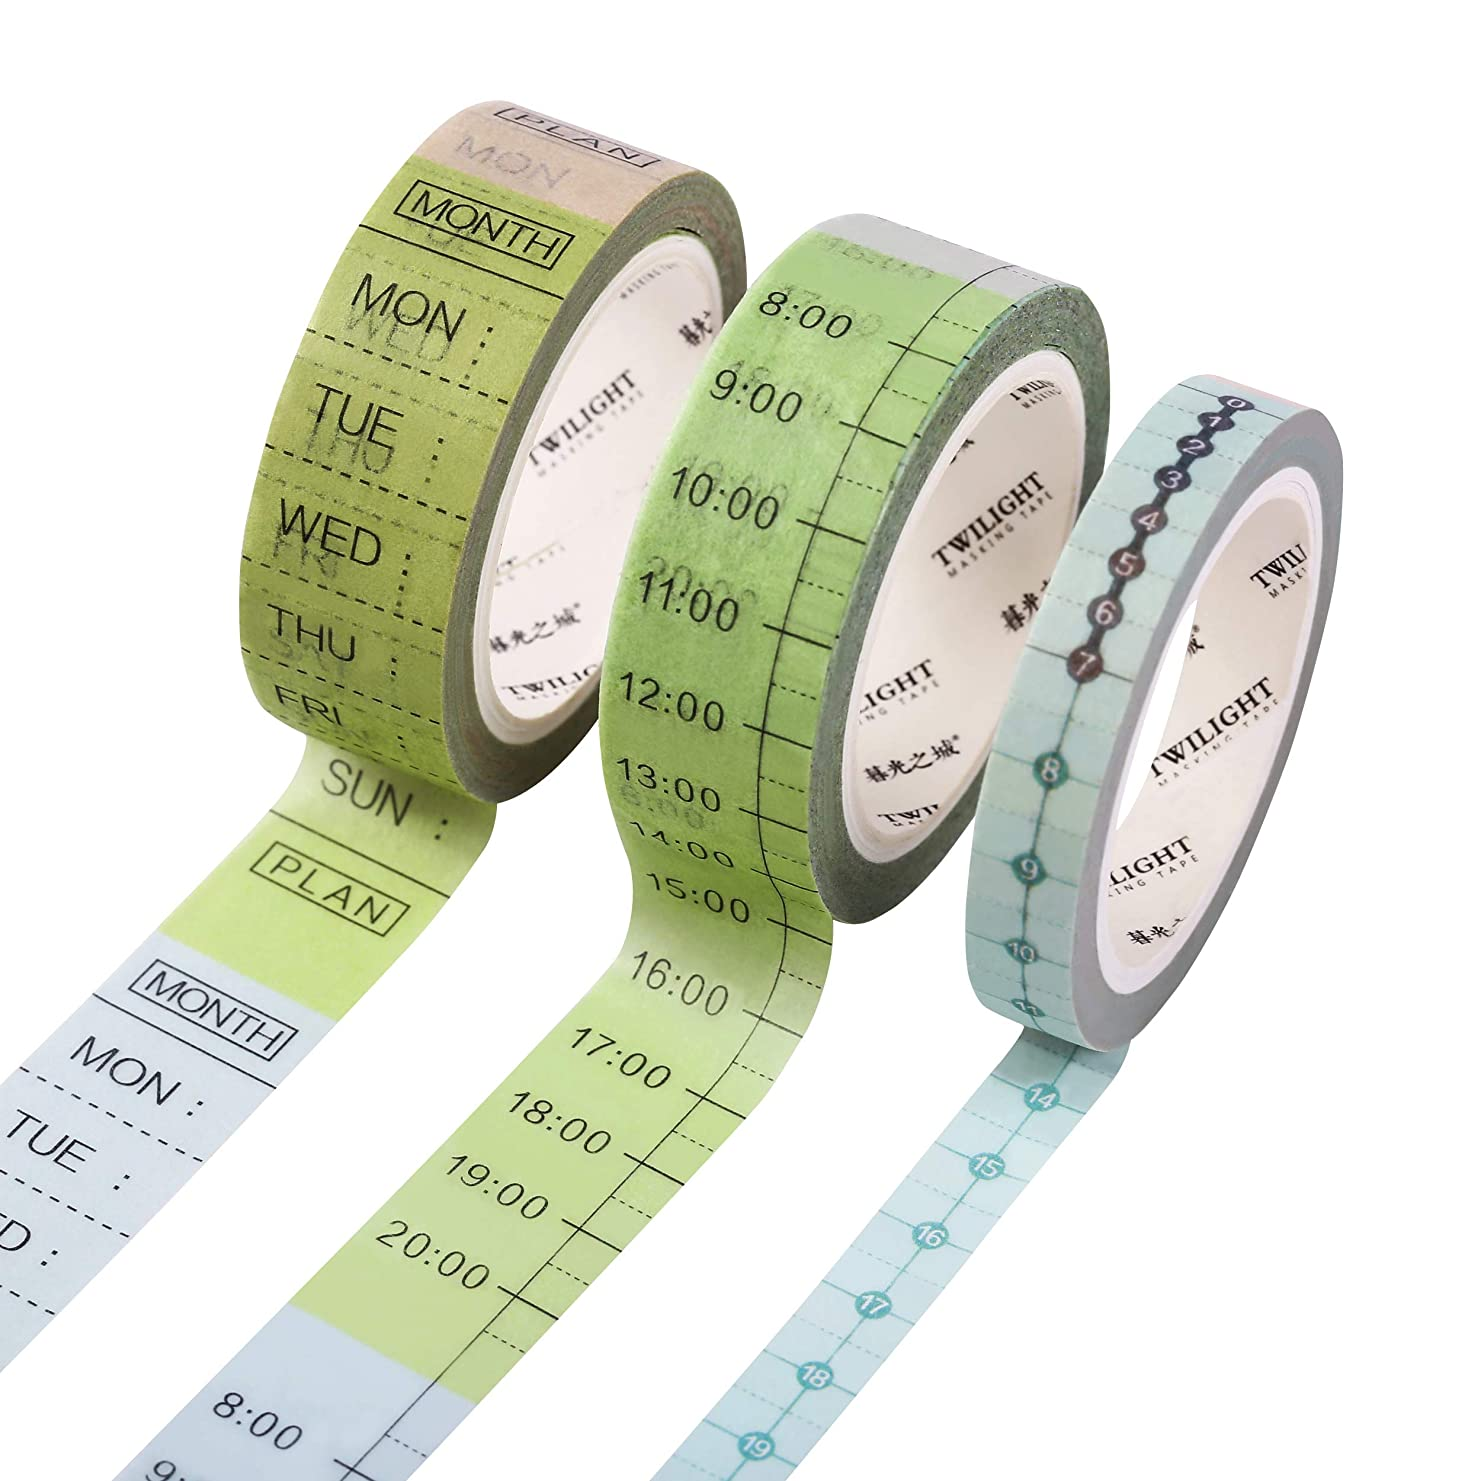 SKYDUE 3 Rolls to Do List Washi Tape Set,15mm Wide Masking Tape for Weekly & Daily Plan, 8mm Hourly Tape, for Bullet Journal, Planner, School, Office with Timeline